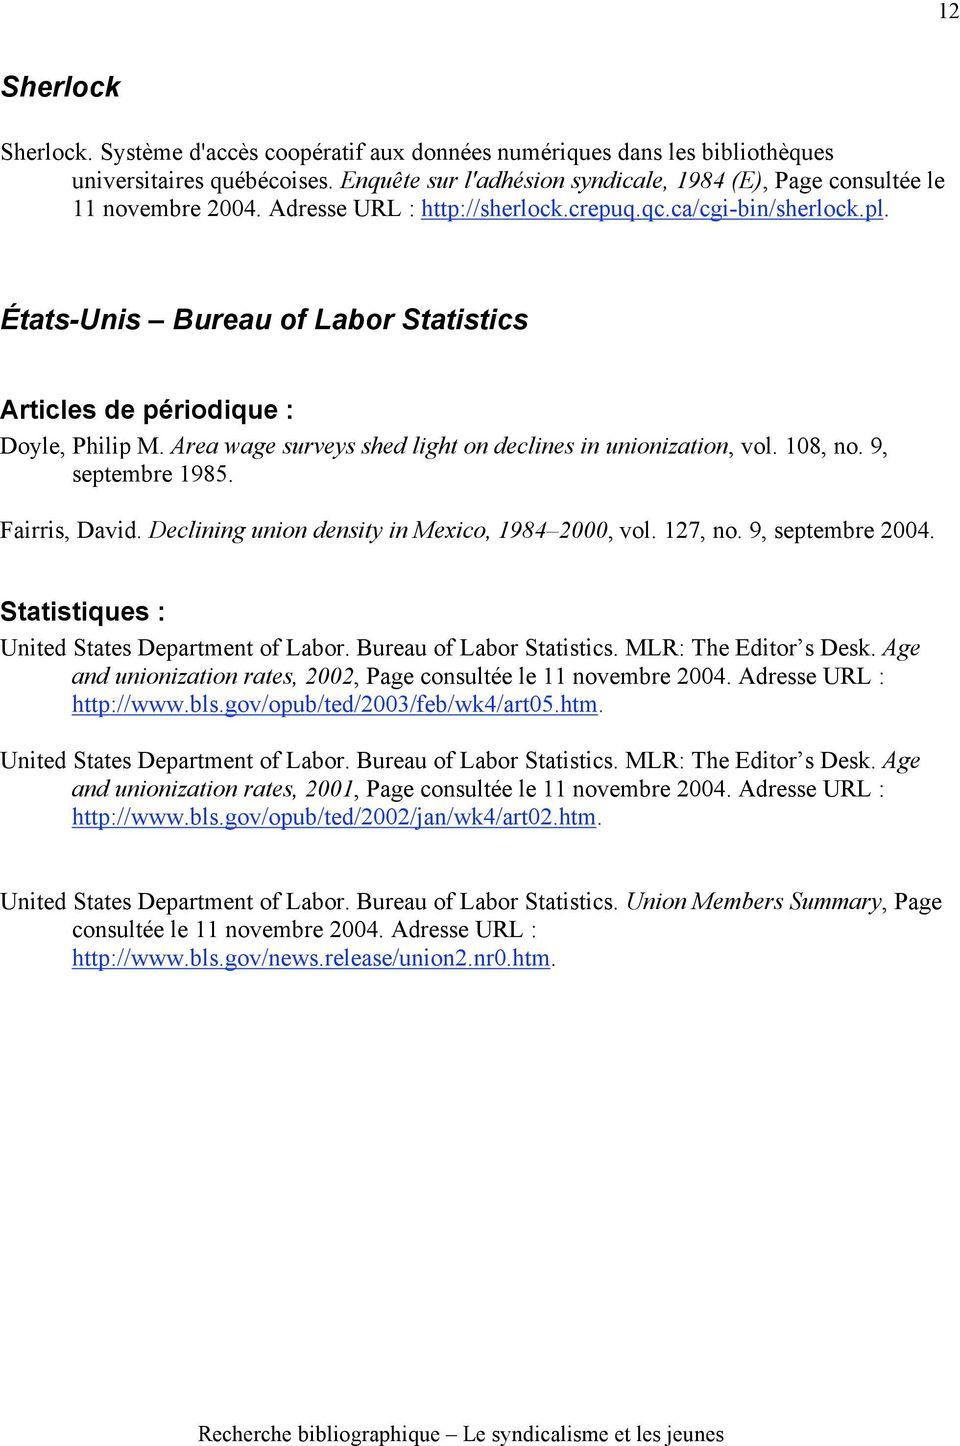 États-Unis Bureau of Labor Statistics Articles de périodique : Doyle, Philip M. Area wage surveys shed light on declines in unionization, vol. 108, no. 9, septembre 1985. Fairris, David.